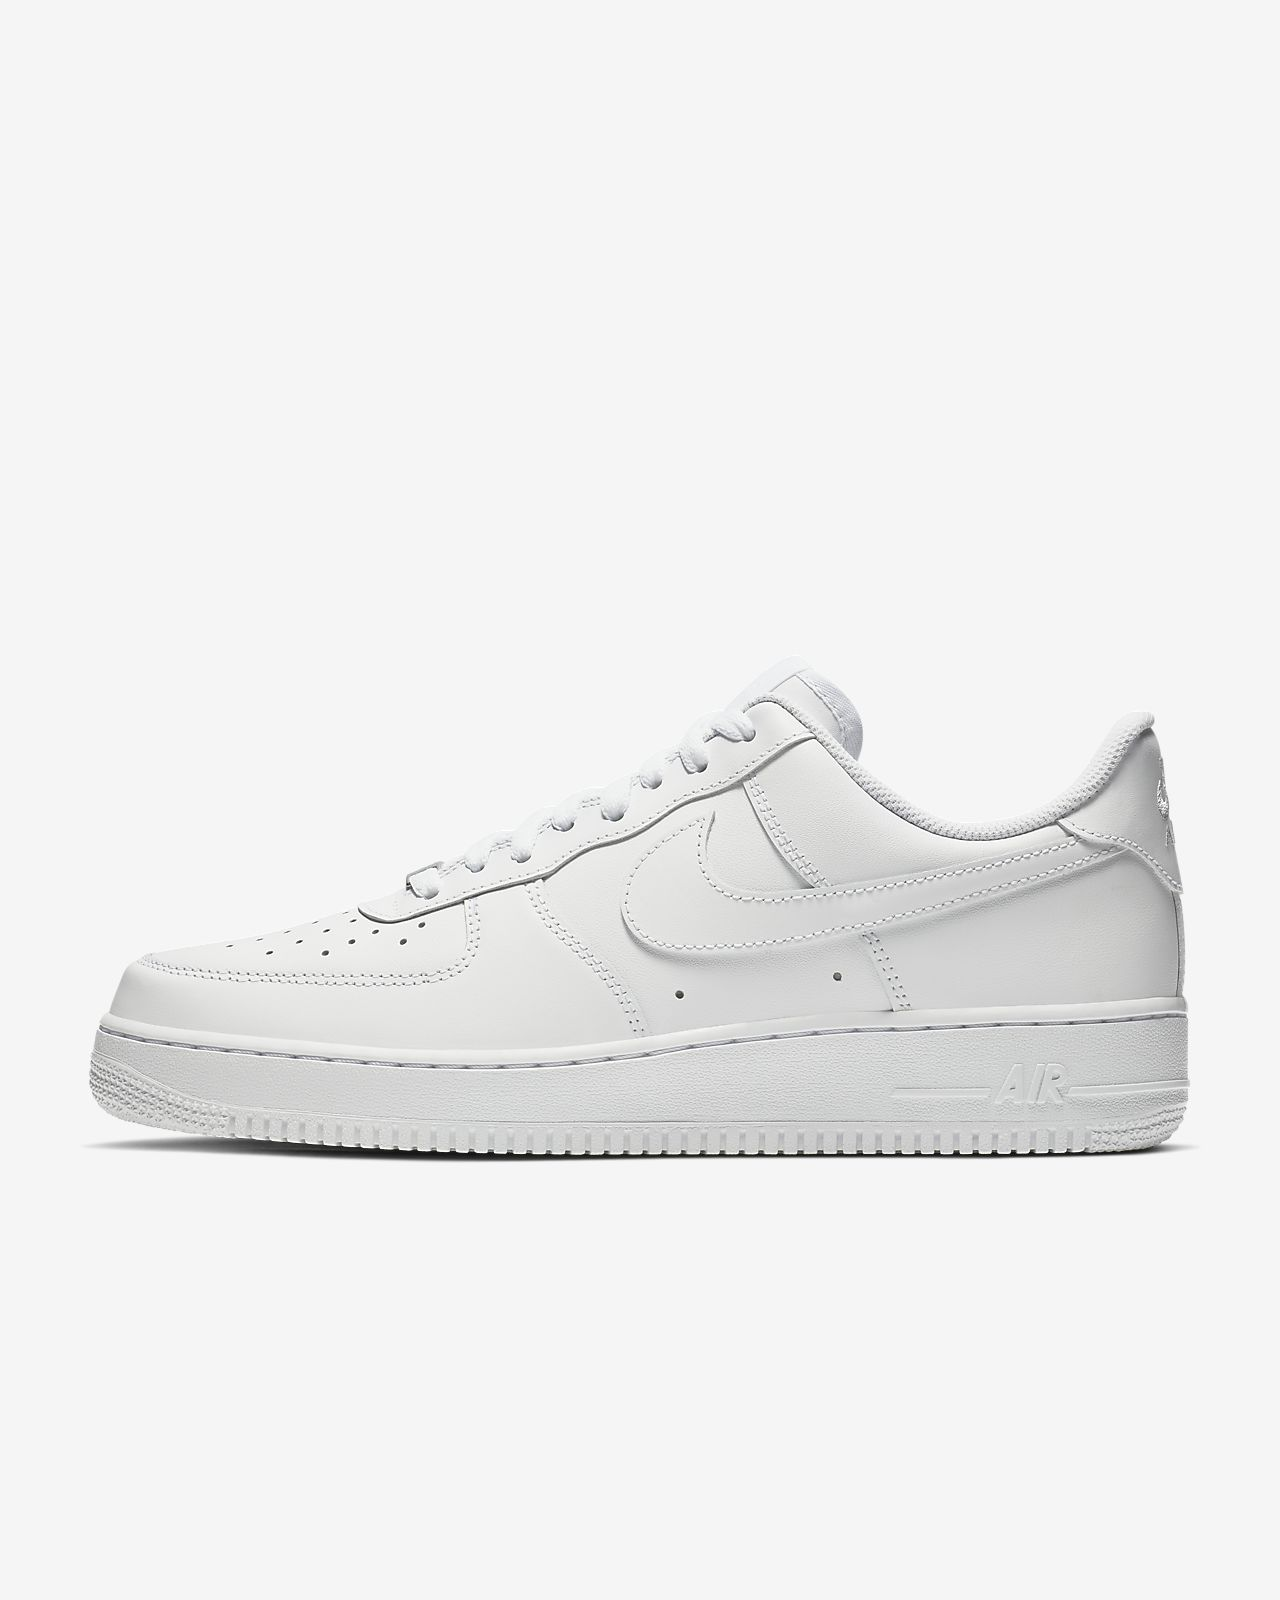 official photos f44c4 81917 ... Chaussure Nike Air Force 1  07